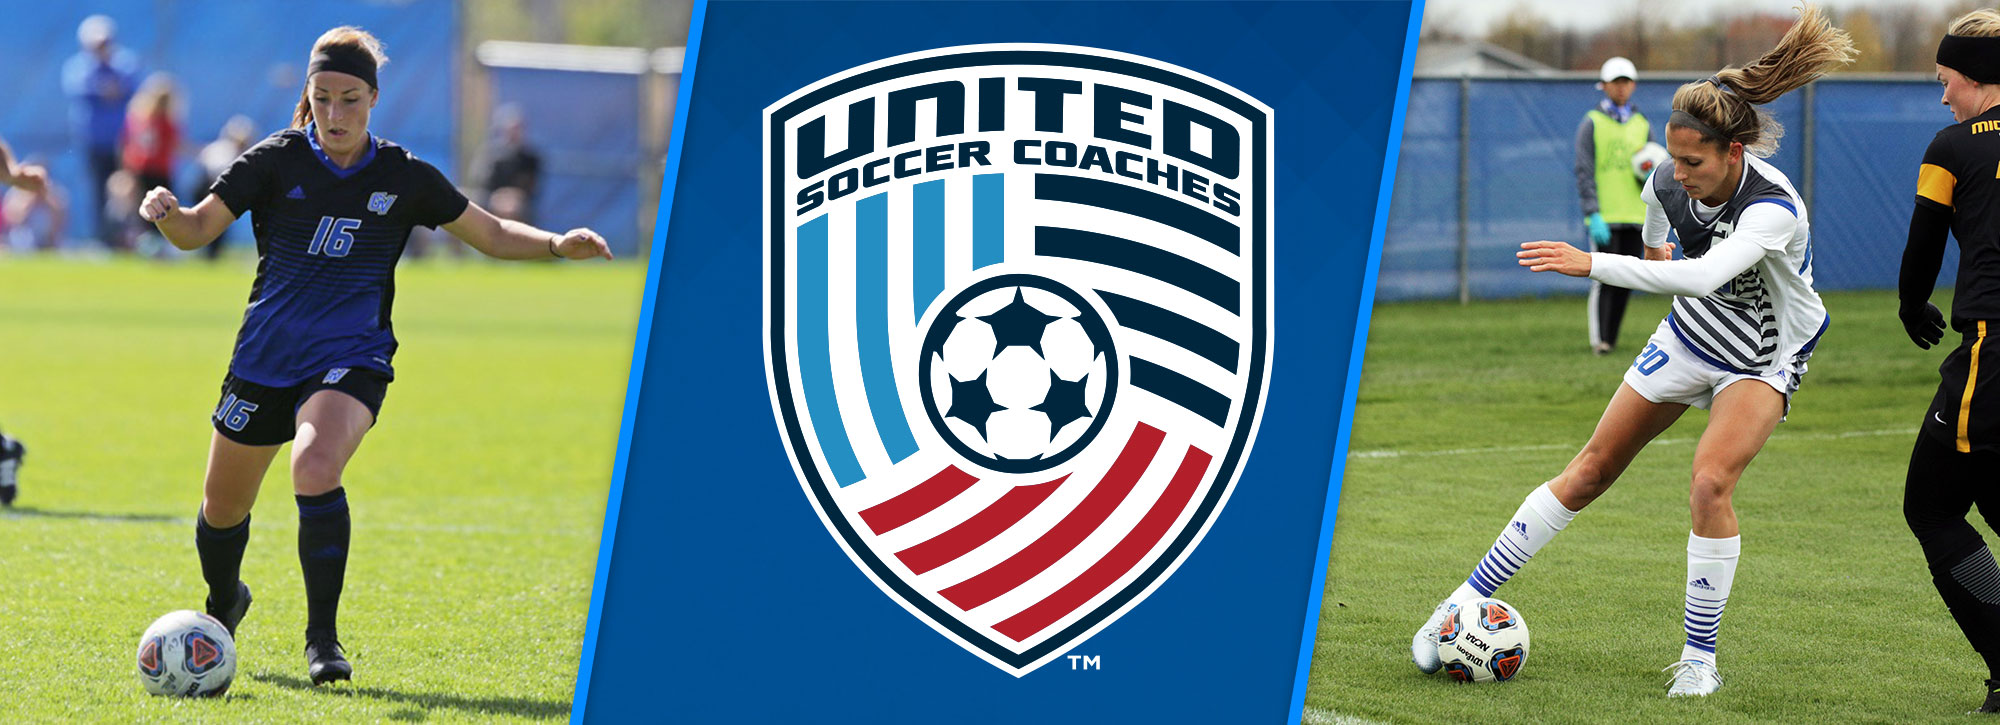 GVSU's Mencotti, Johnson Named United Soccer Coaches All-Americans